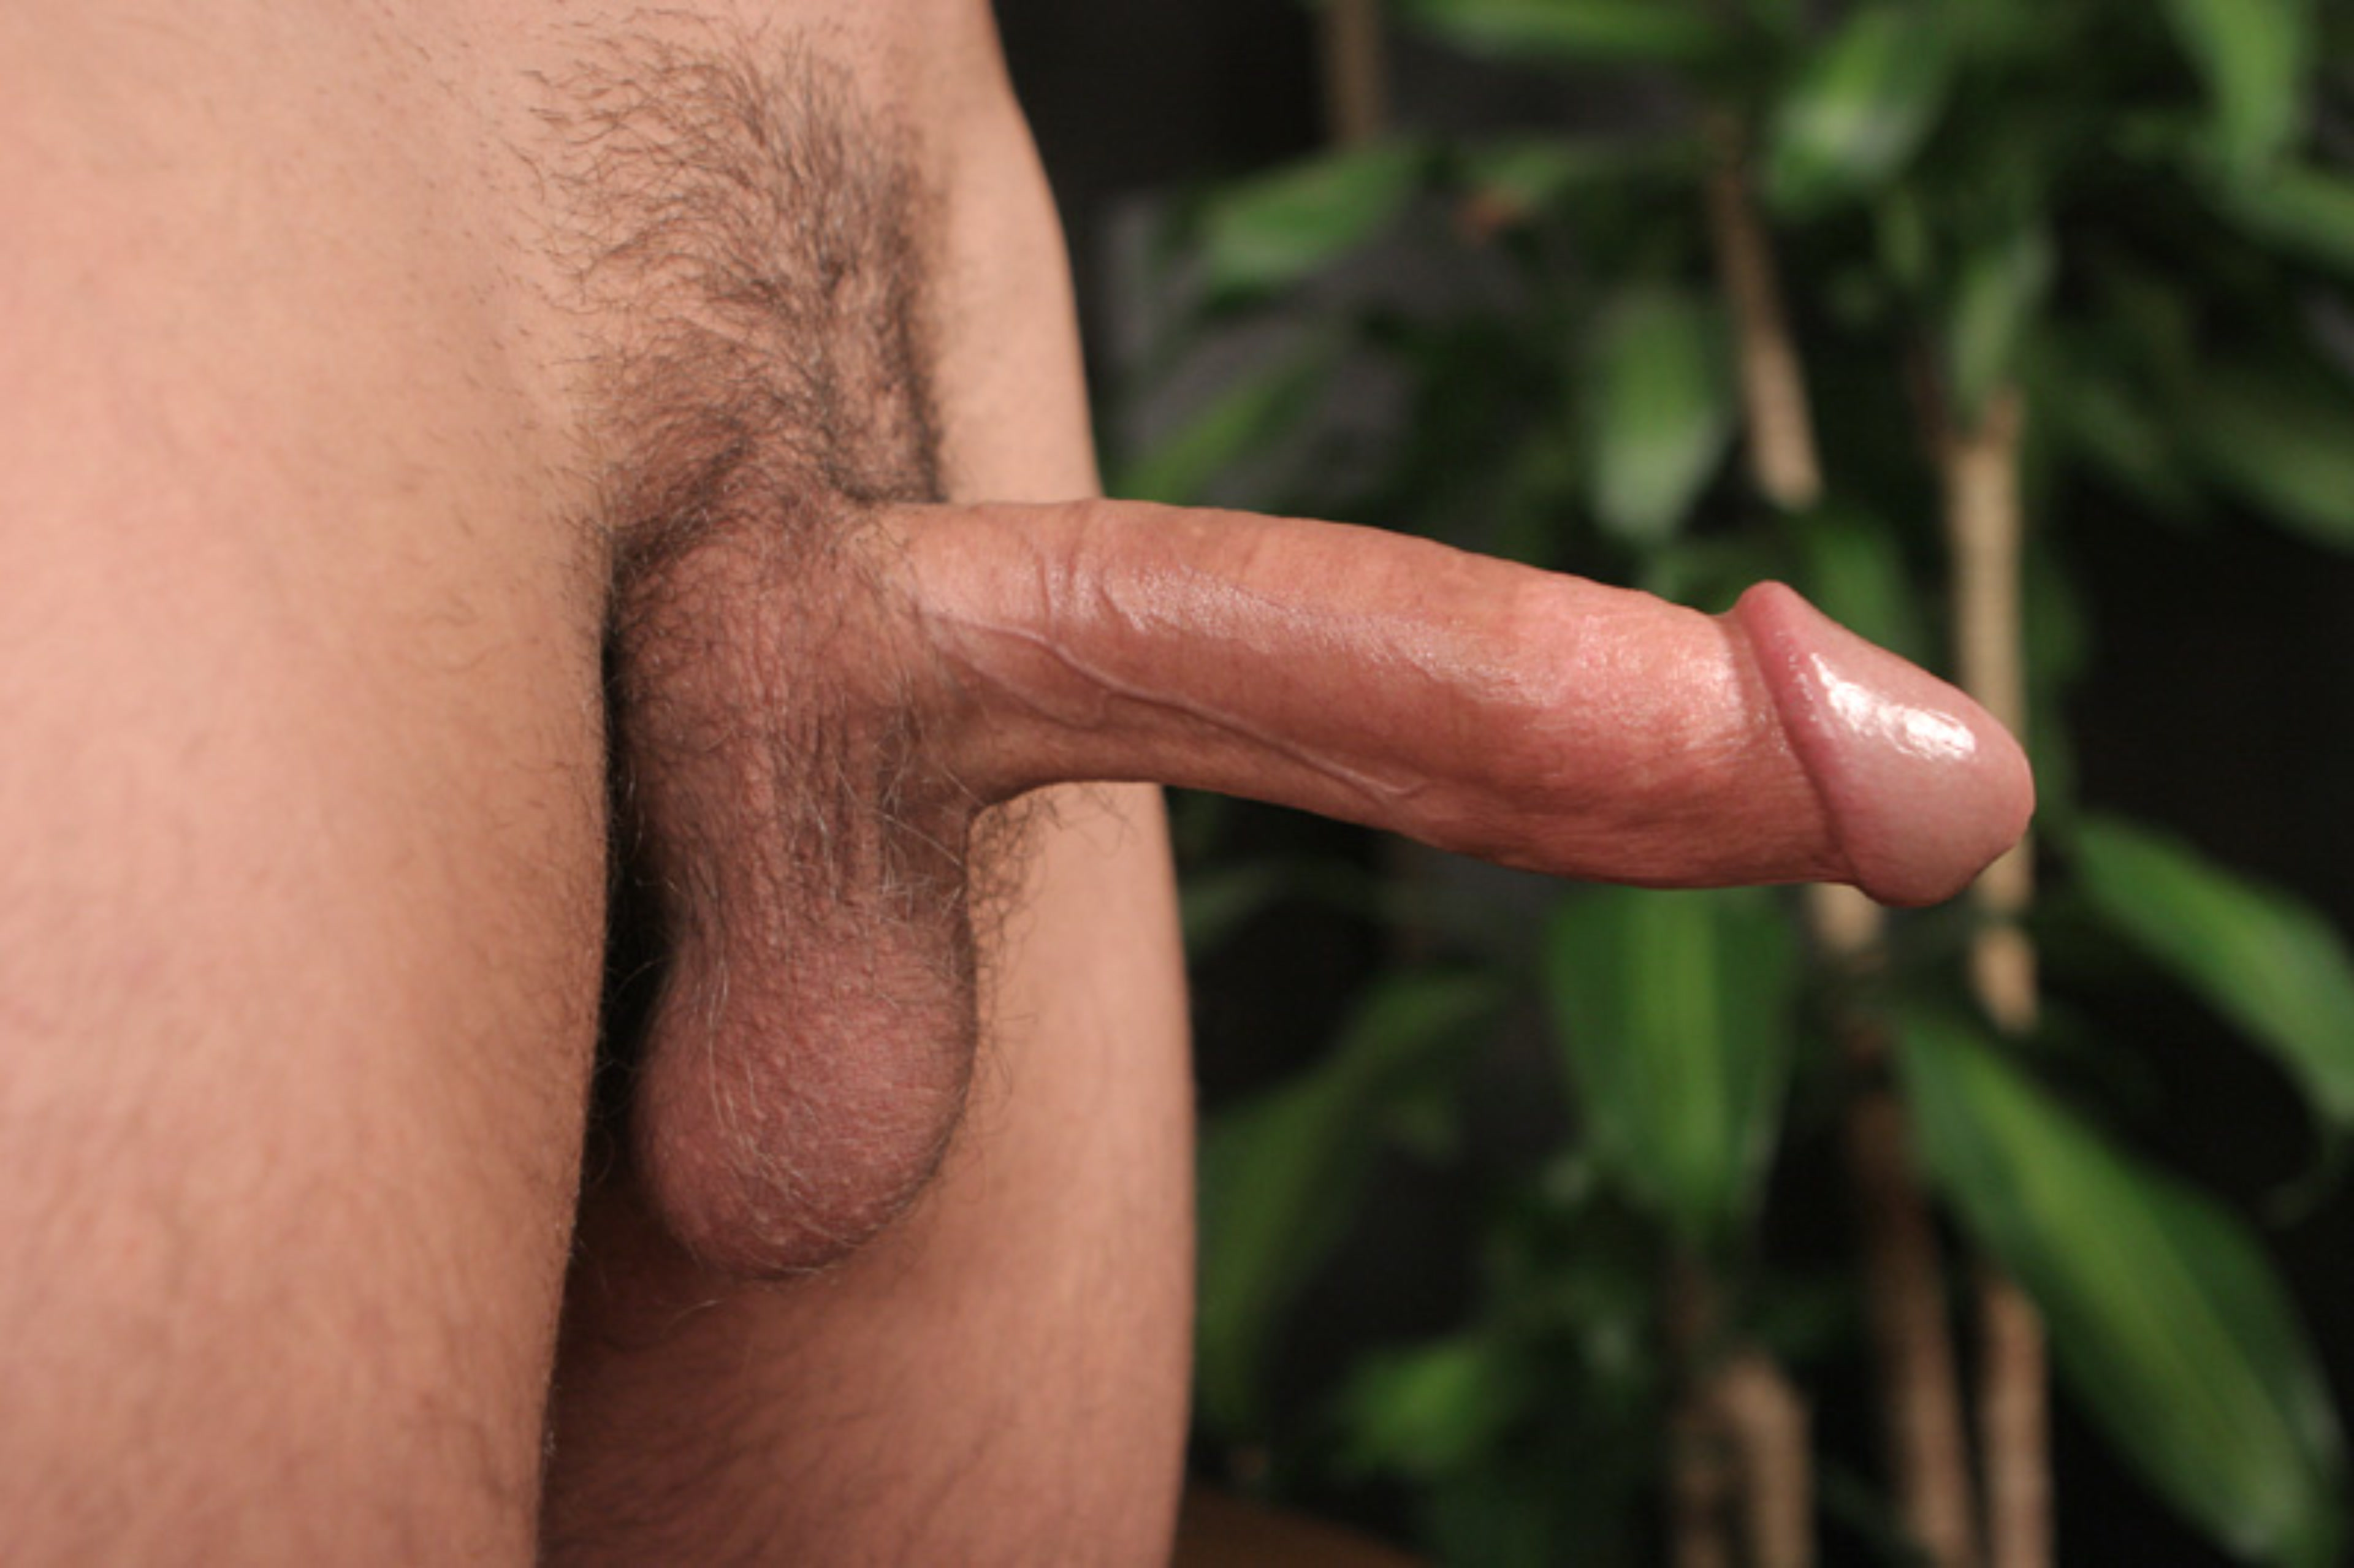 Closeup picture of a long hard dick